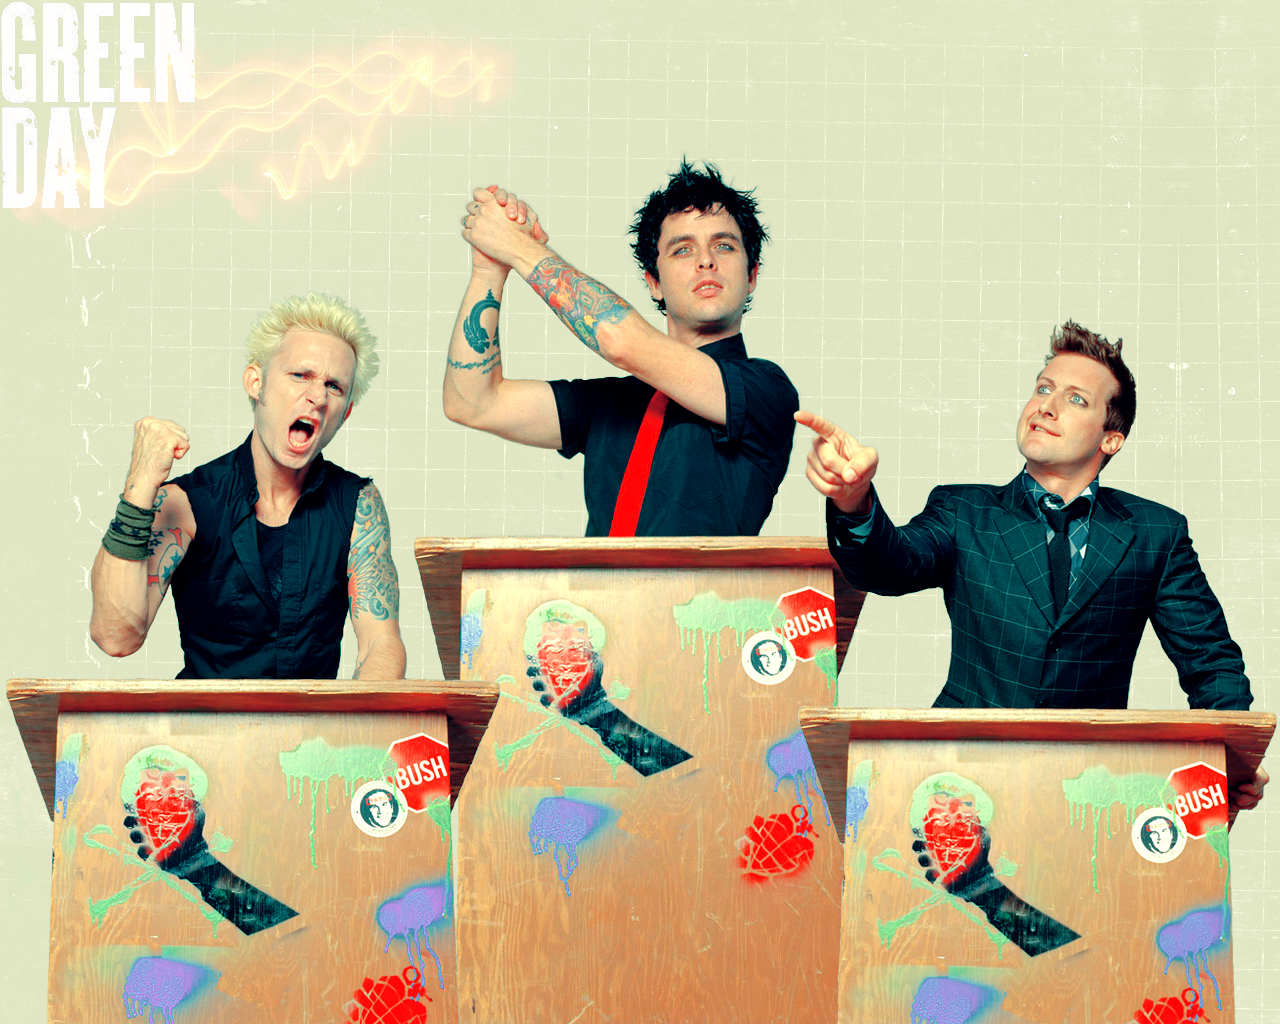 http://3.bp.blogspot.com/-MO3OZqWNlCA/TaEf2SHDh9I/AAAAAAAAABk/QsmOLaliLYs/s1600/Green_Day_wallpaper_by_DolphinJelly.png